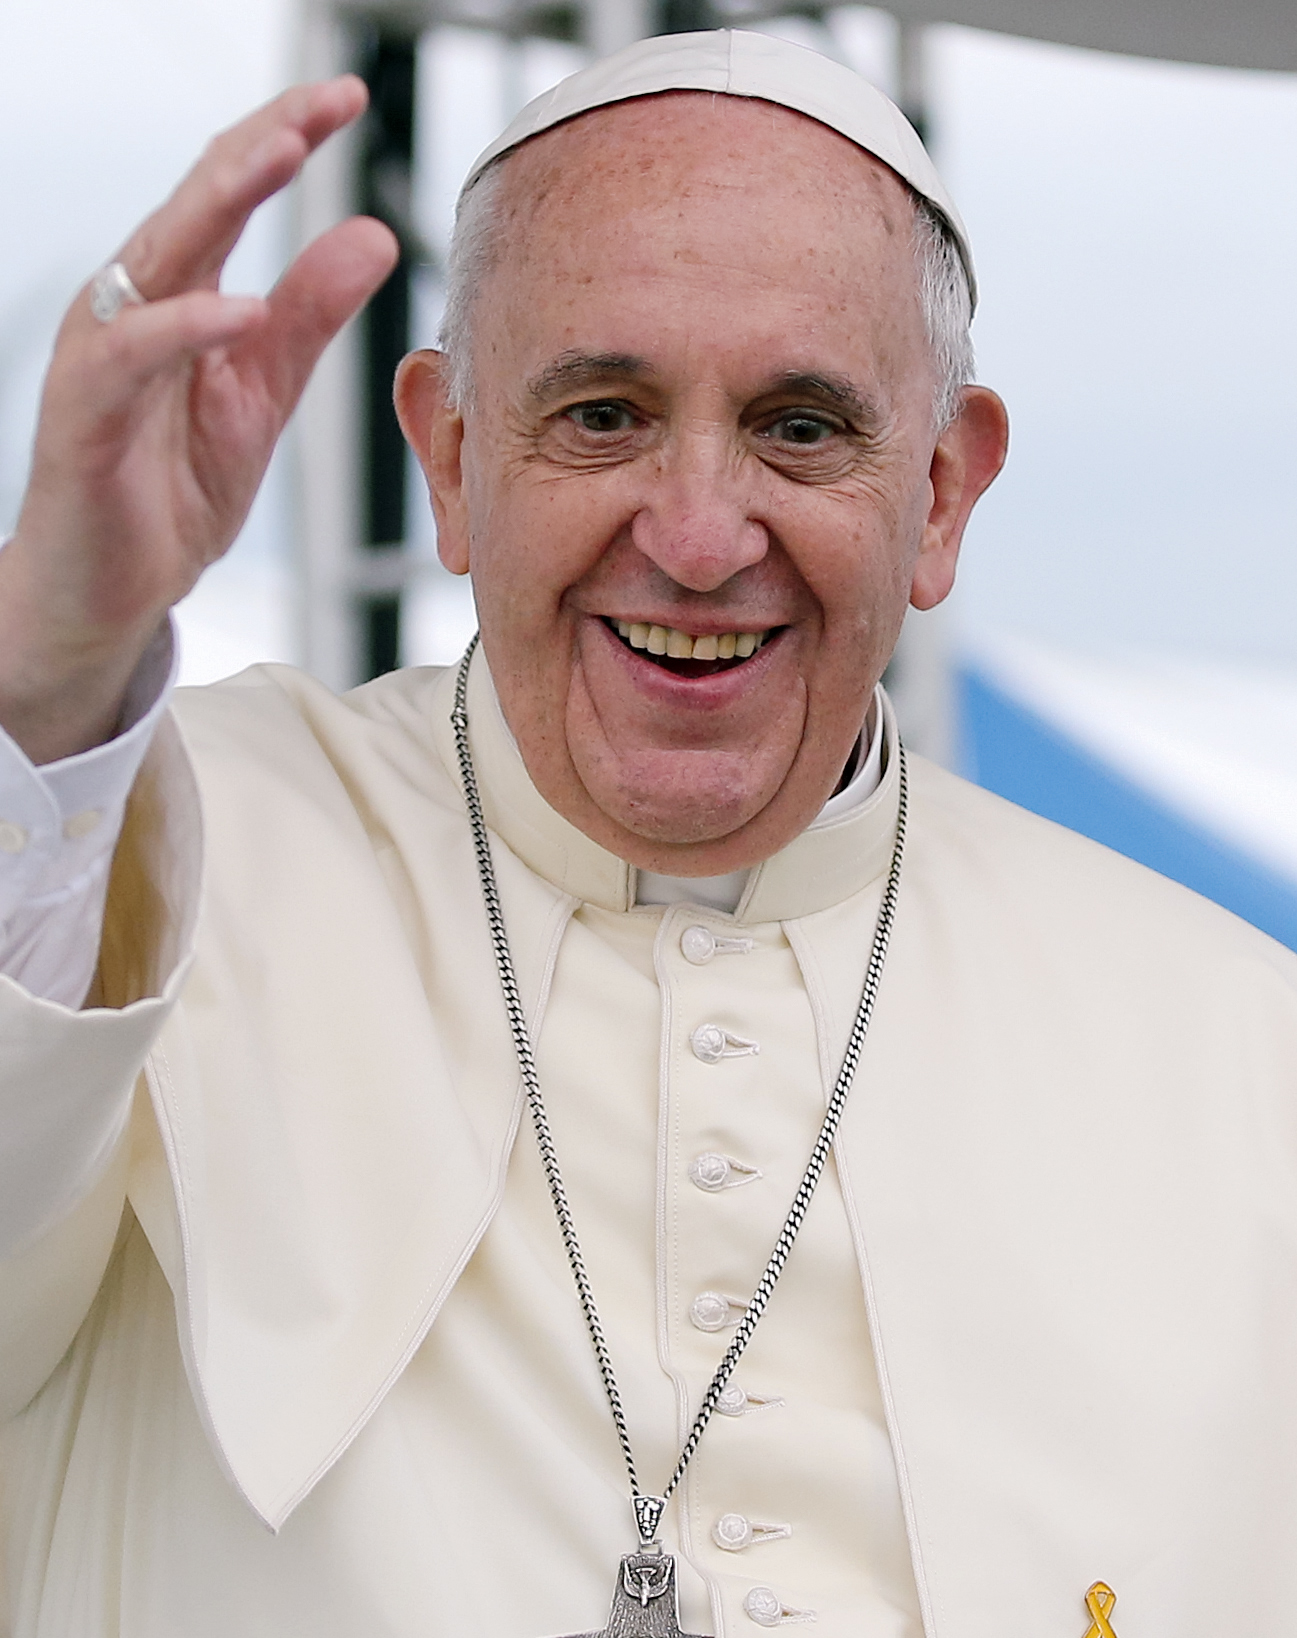 POPE FRANCIS - Wikipedia, the free encyclopedia